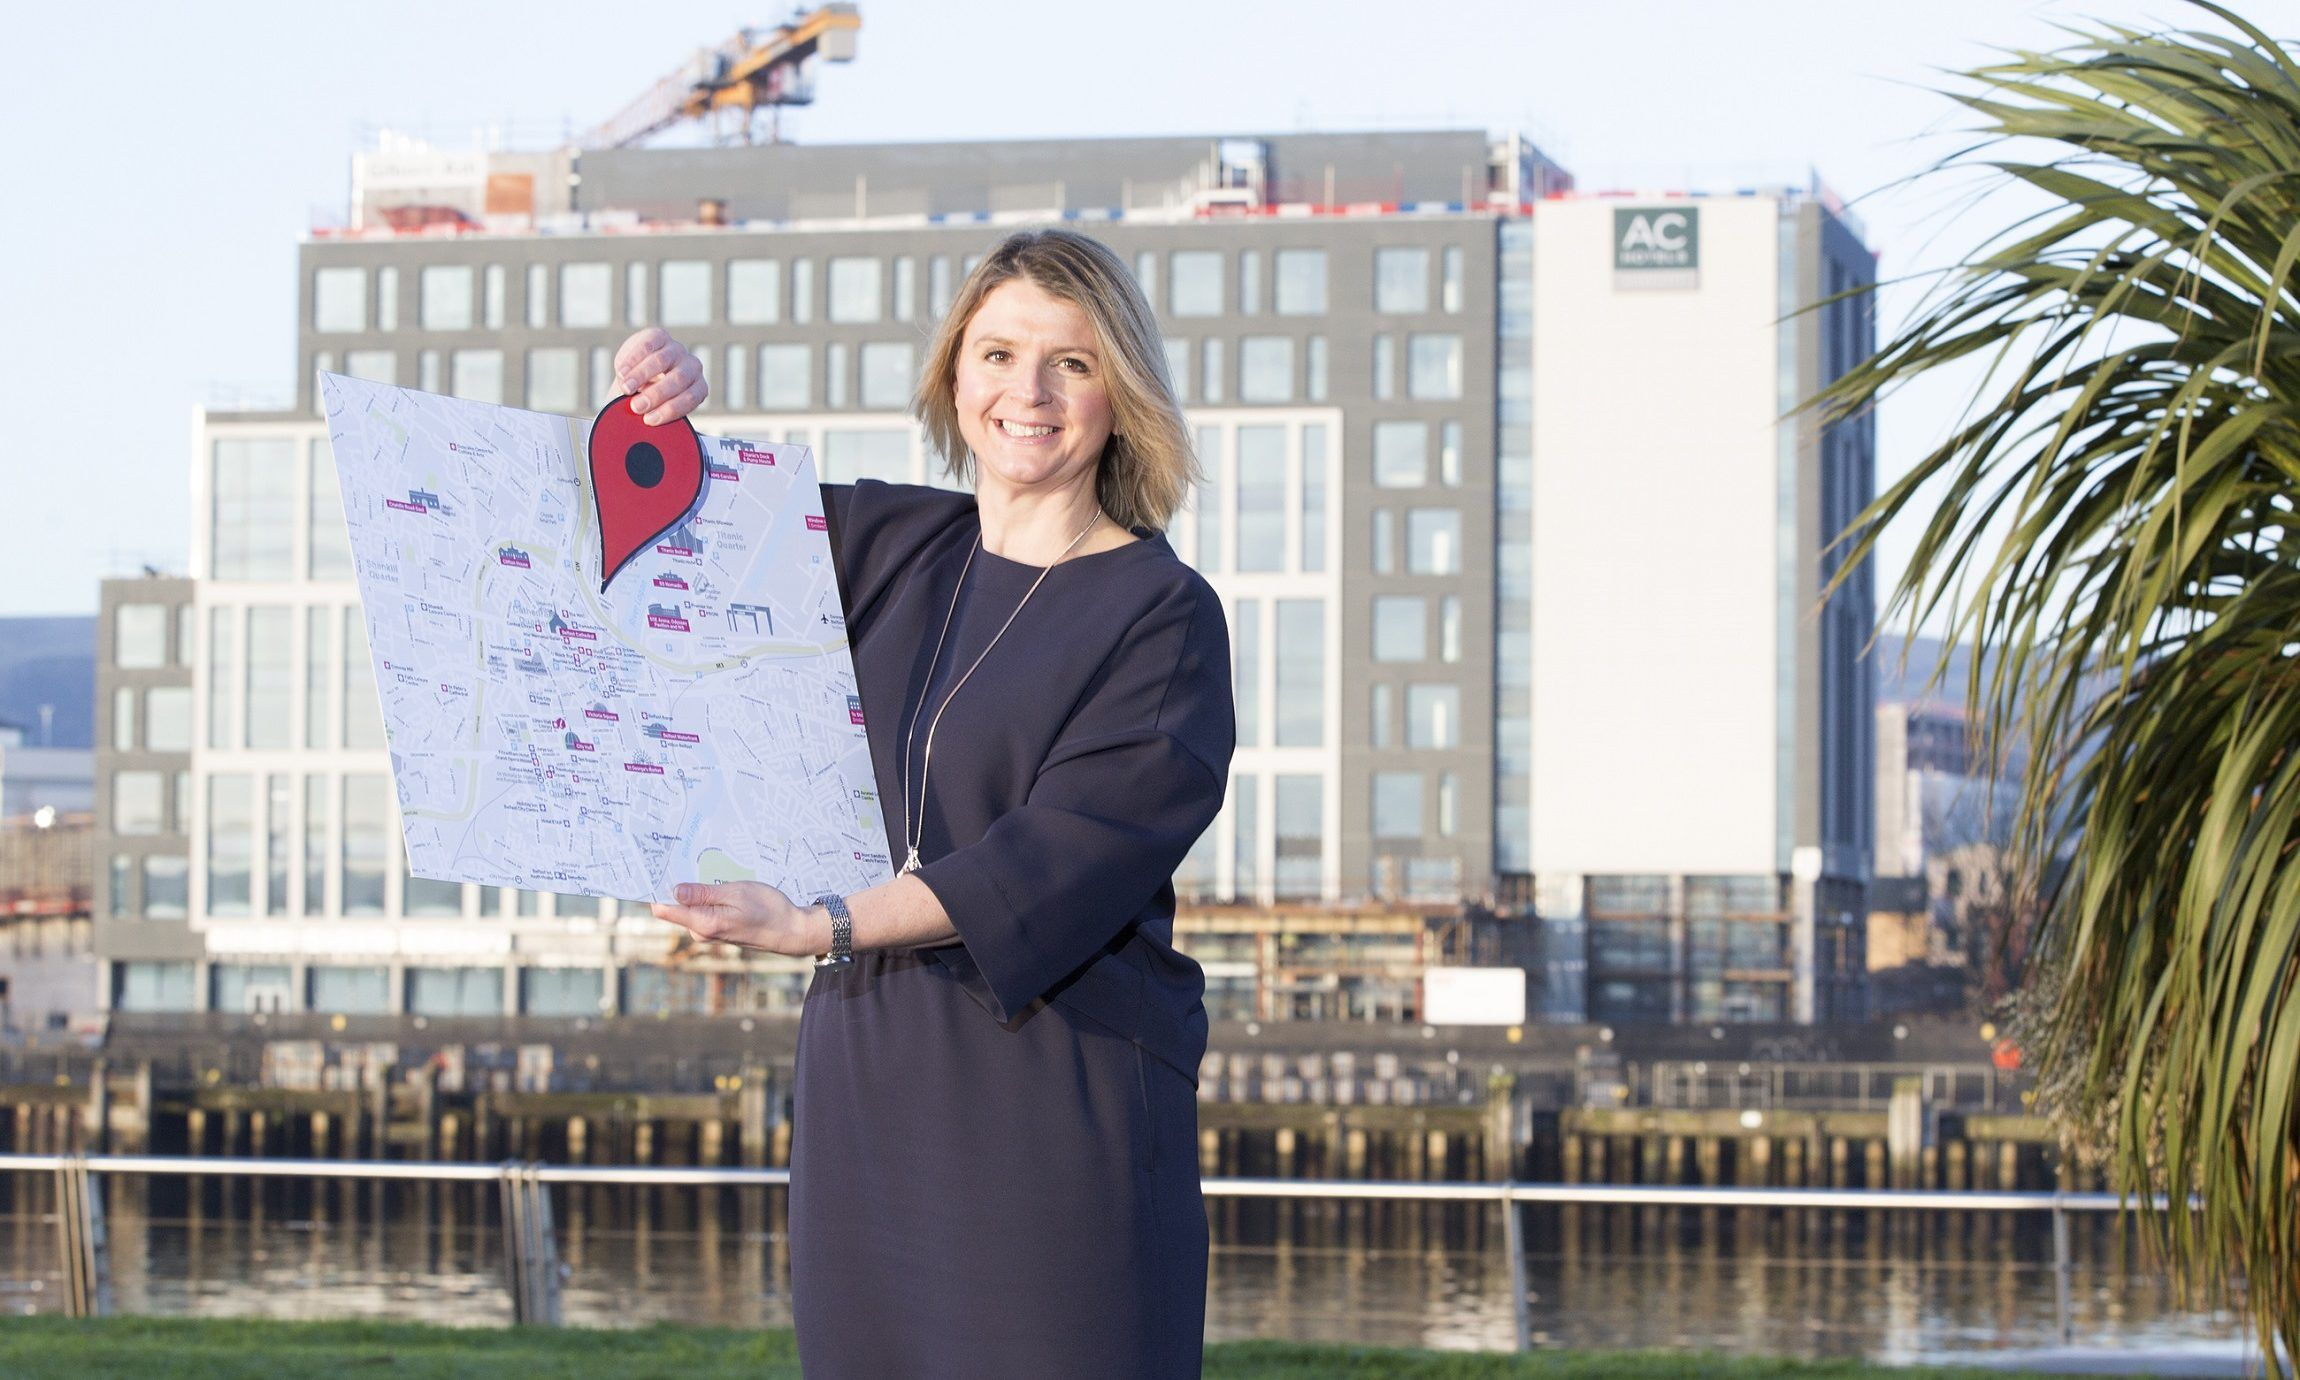 Ac Hotels By Marriott Has Confirmed Plans To Open Its First Hotel In Northern Ireland In Belfast In April This Year The Hotel Ch Ac Hotel Marriott Hotel Owner